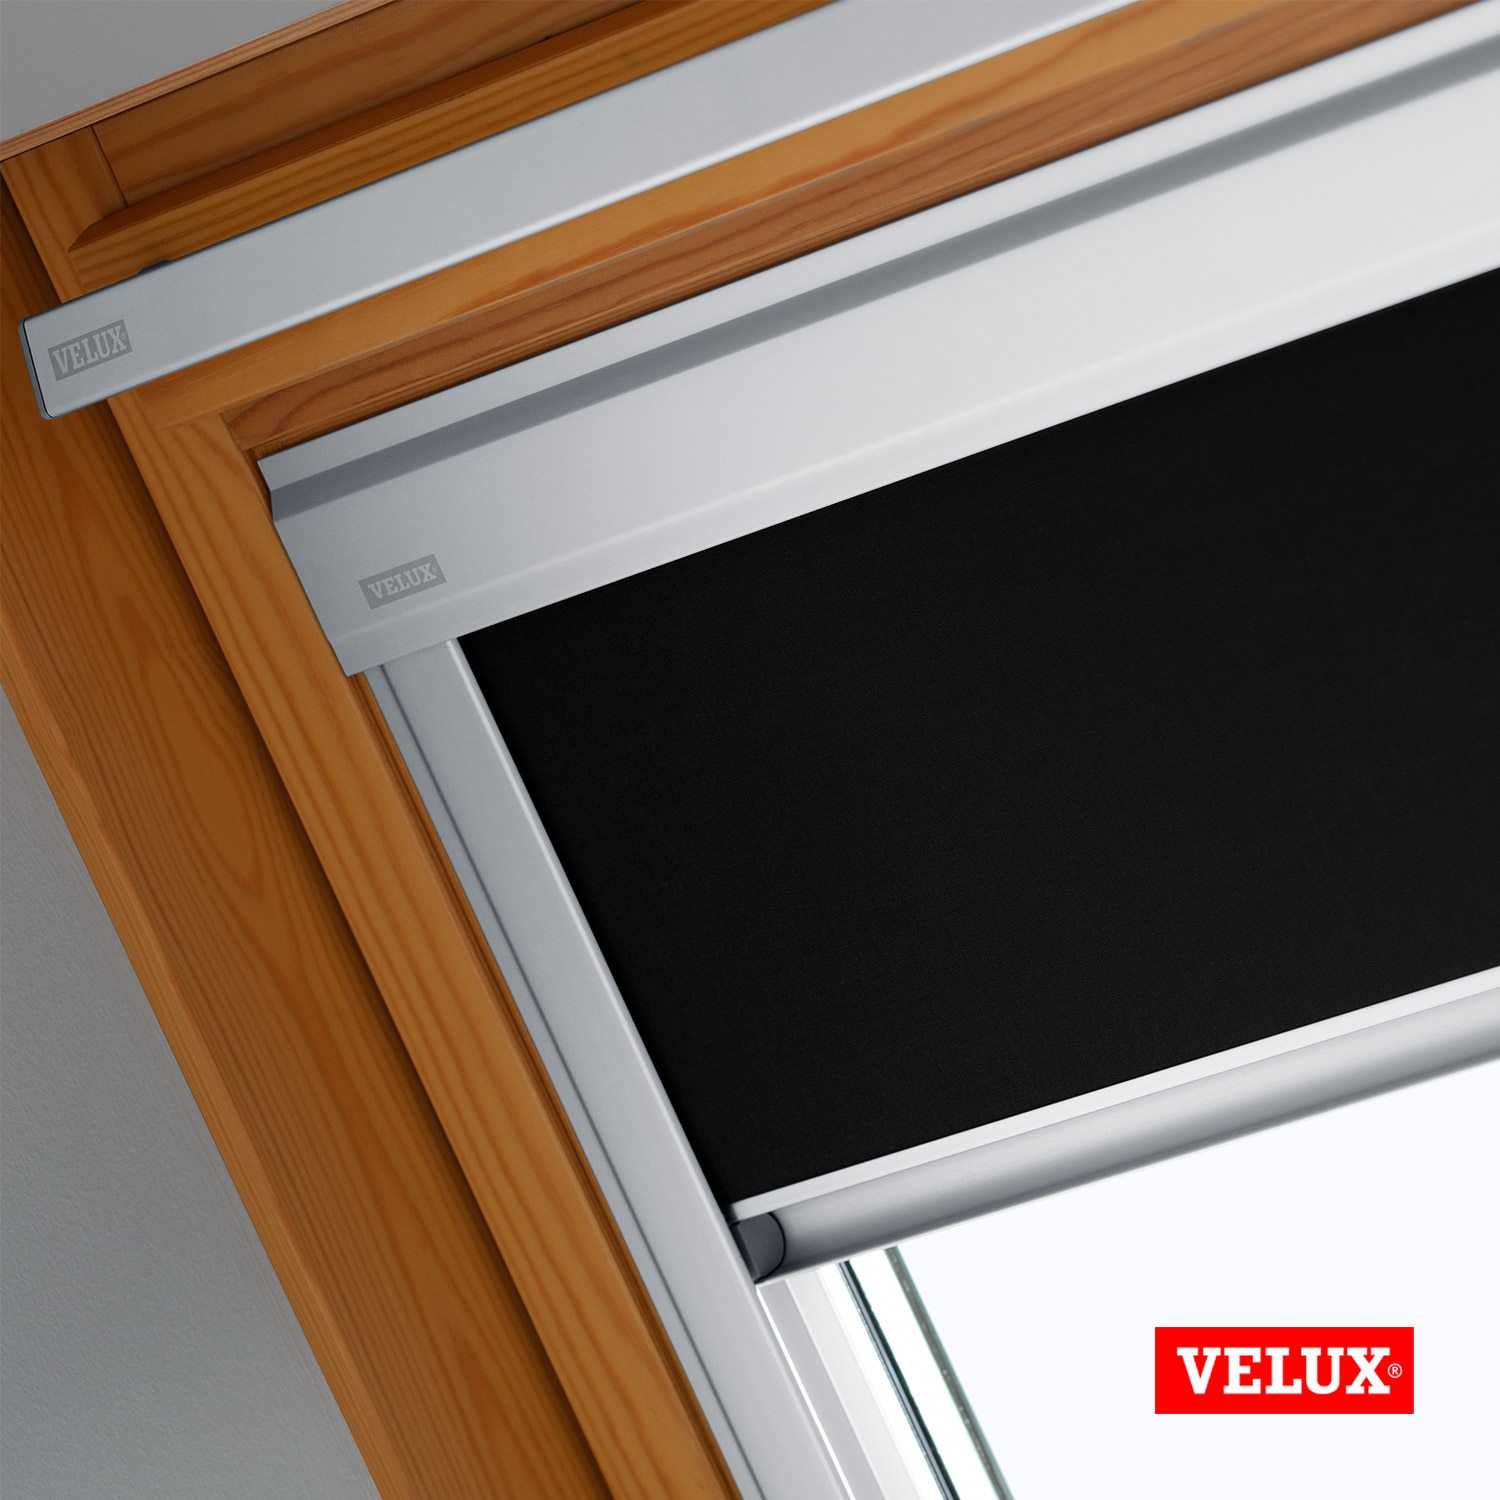 Velux Replacement Blackout Blind For Velux Roof Windows